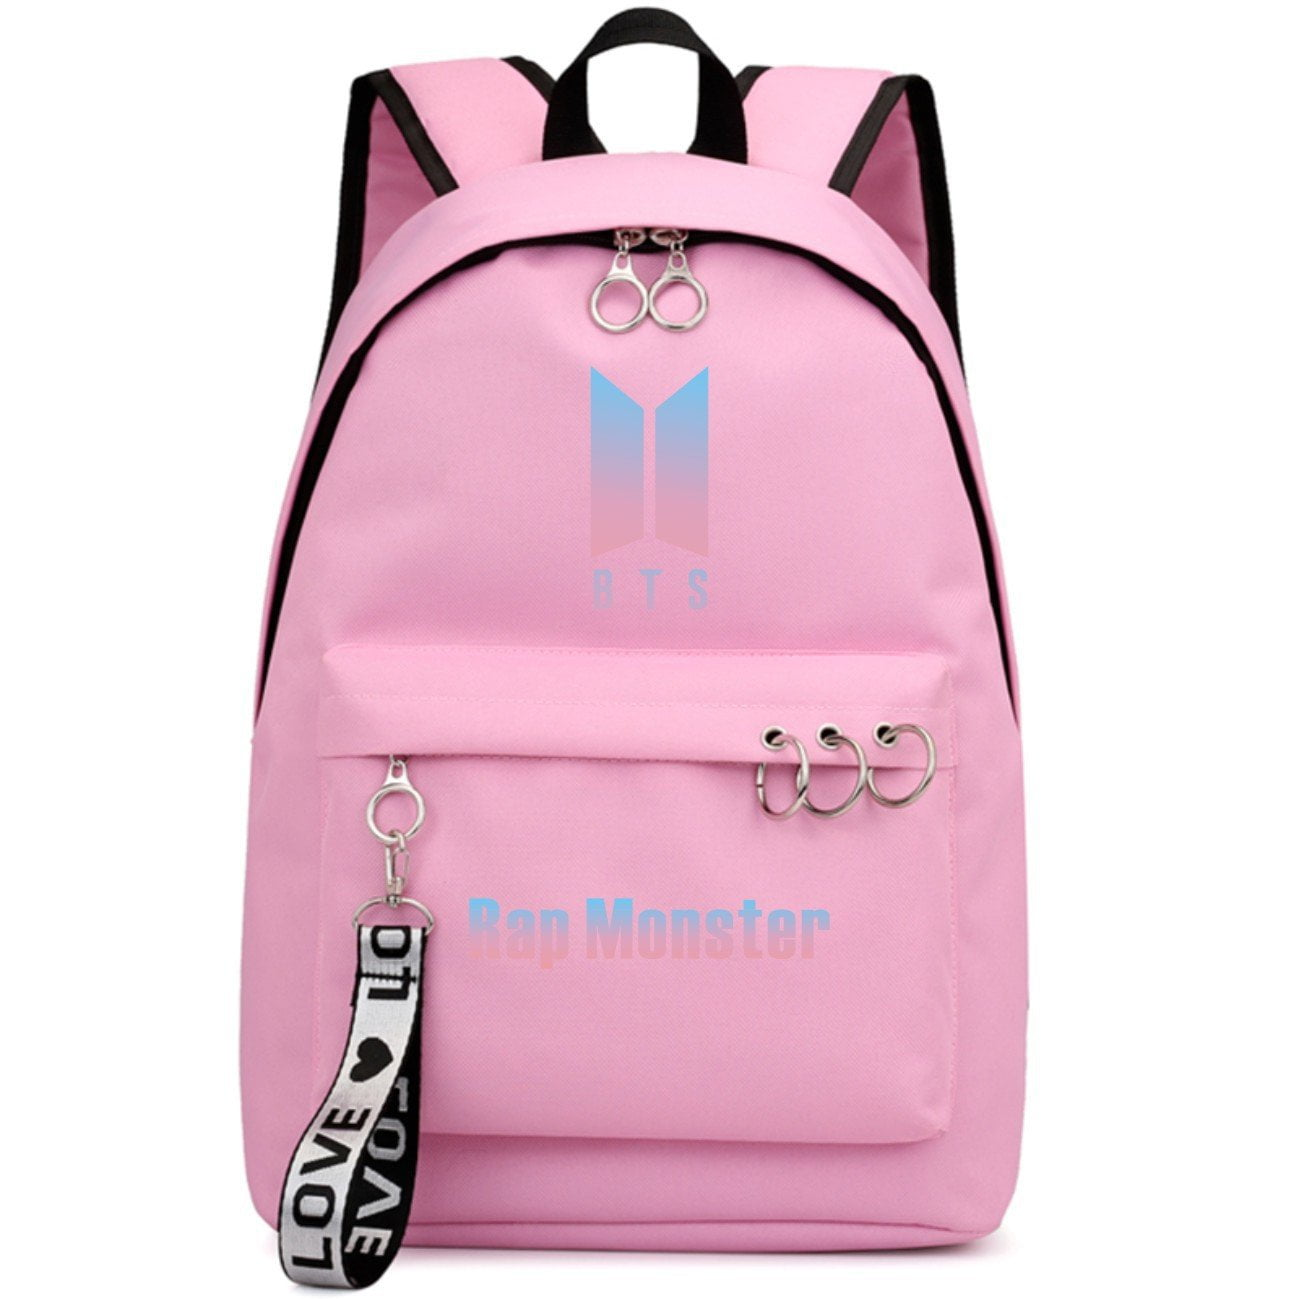 BTS New Logo Large Capacity Backpack / School Bag with Silver Rings in 2 Colours  583071224455#3925845045032